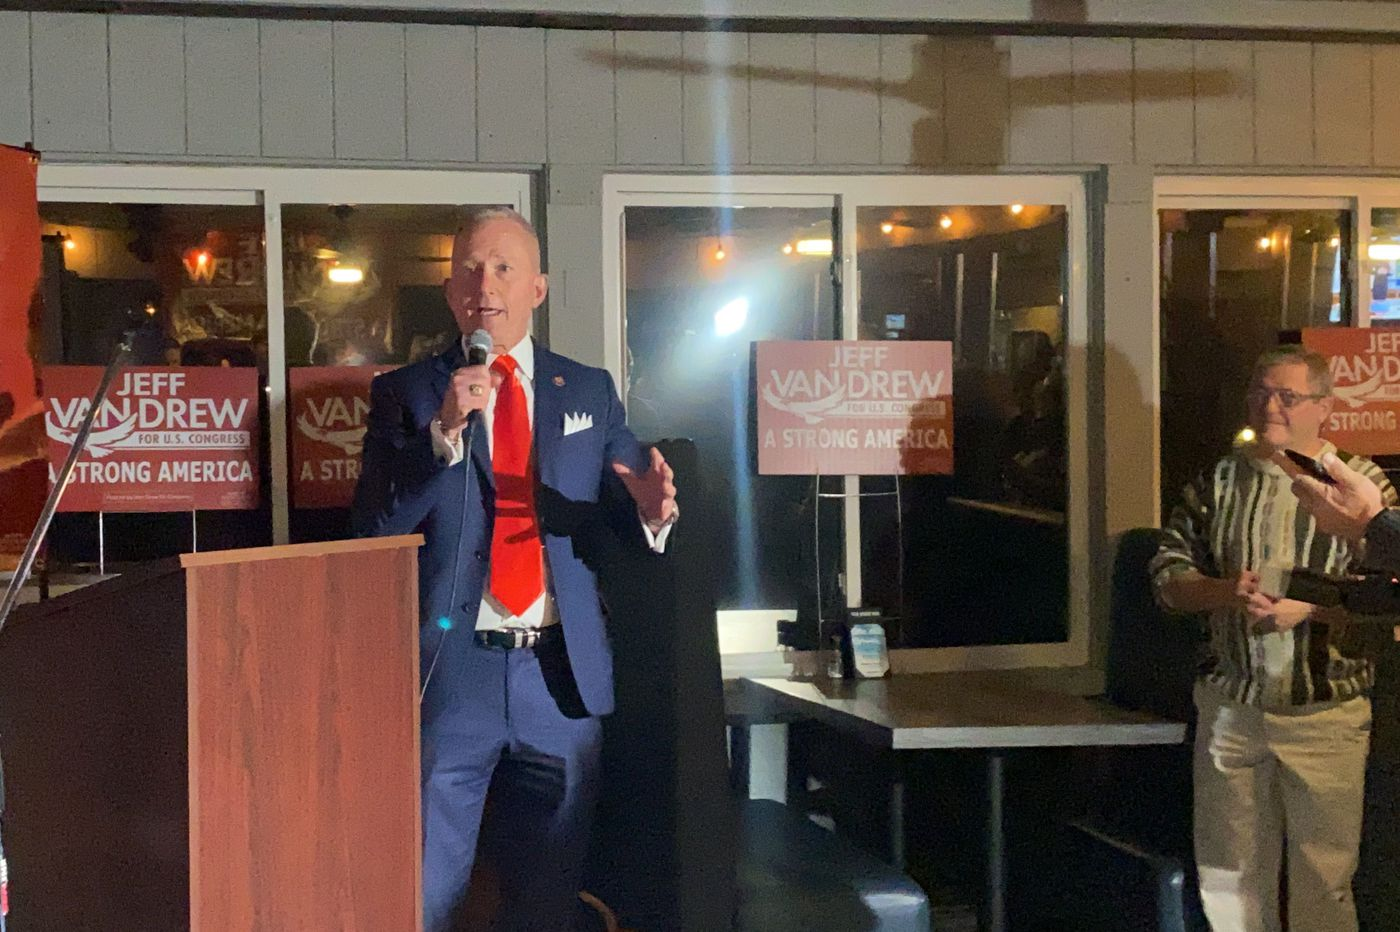 U.S. Rep. Jeff Van Drew leading in race as storied Kennedy family runs into thicket of local Atlantic City politics